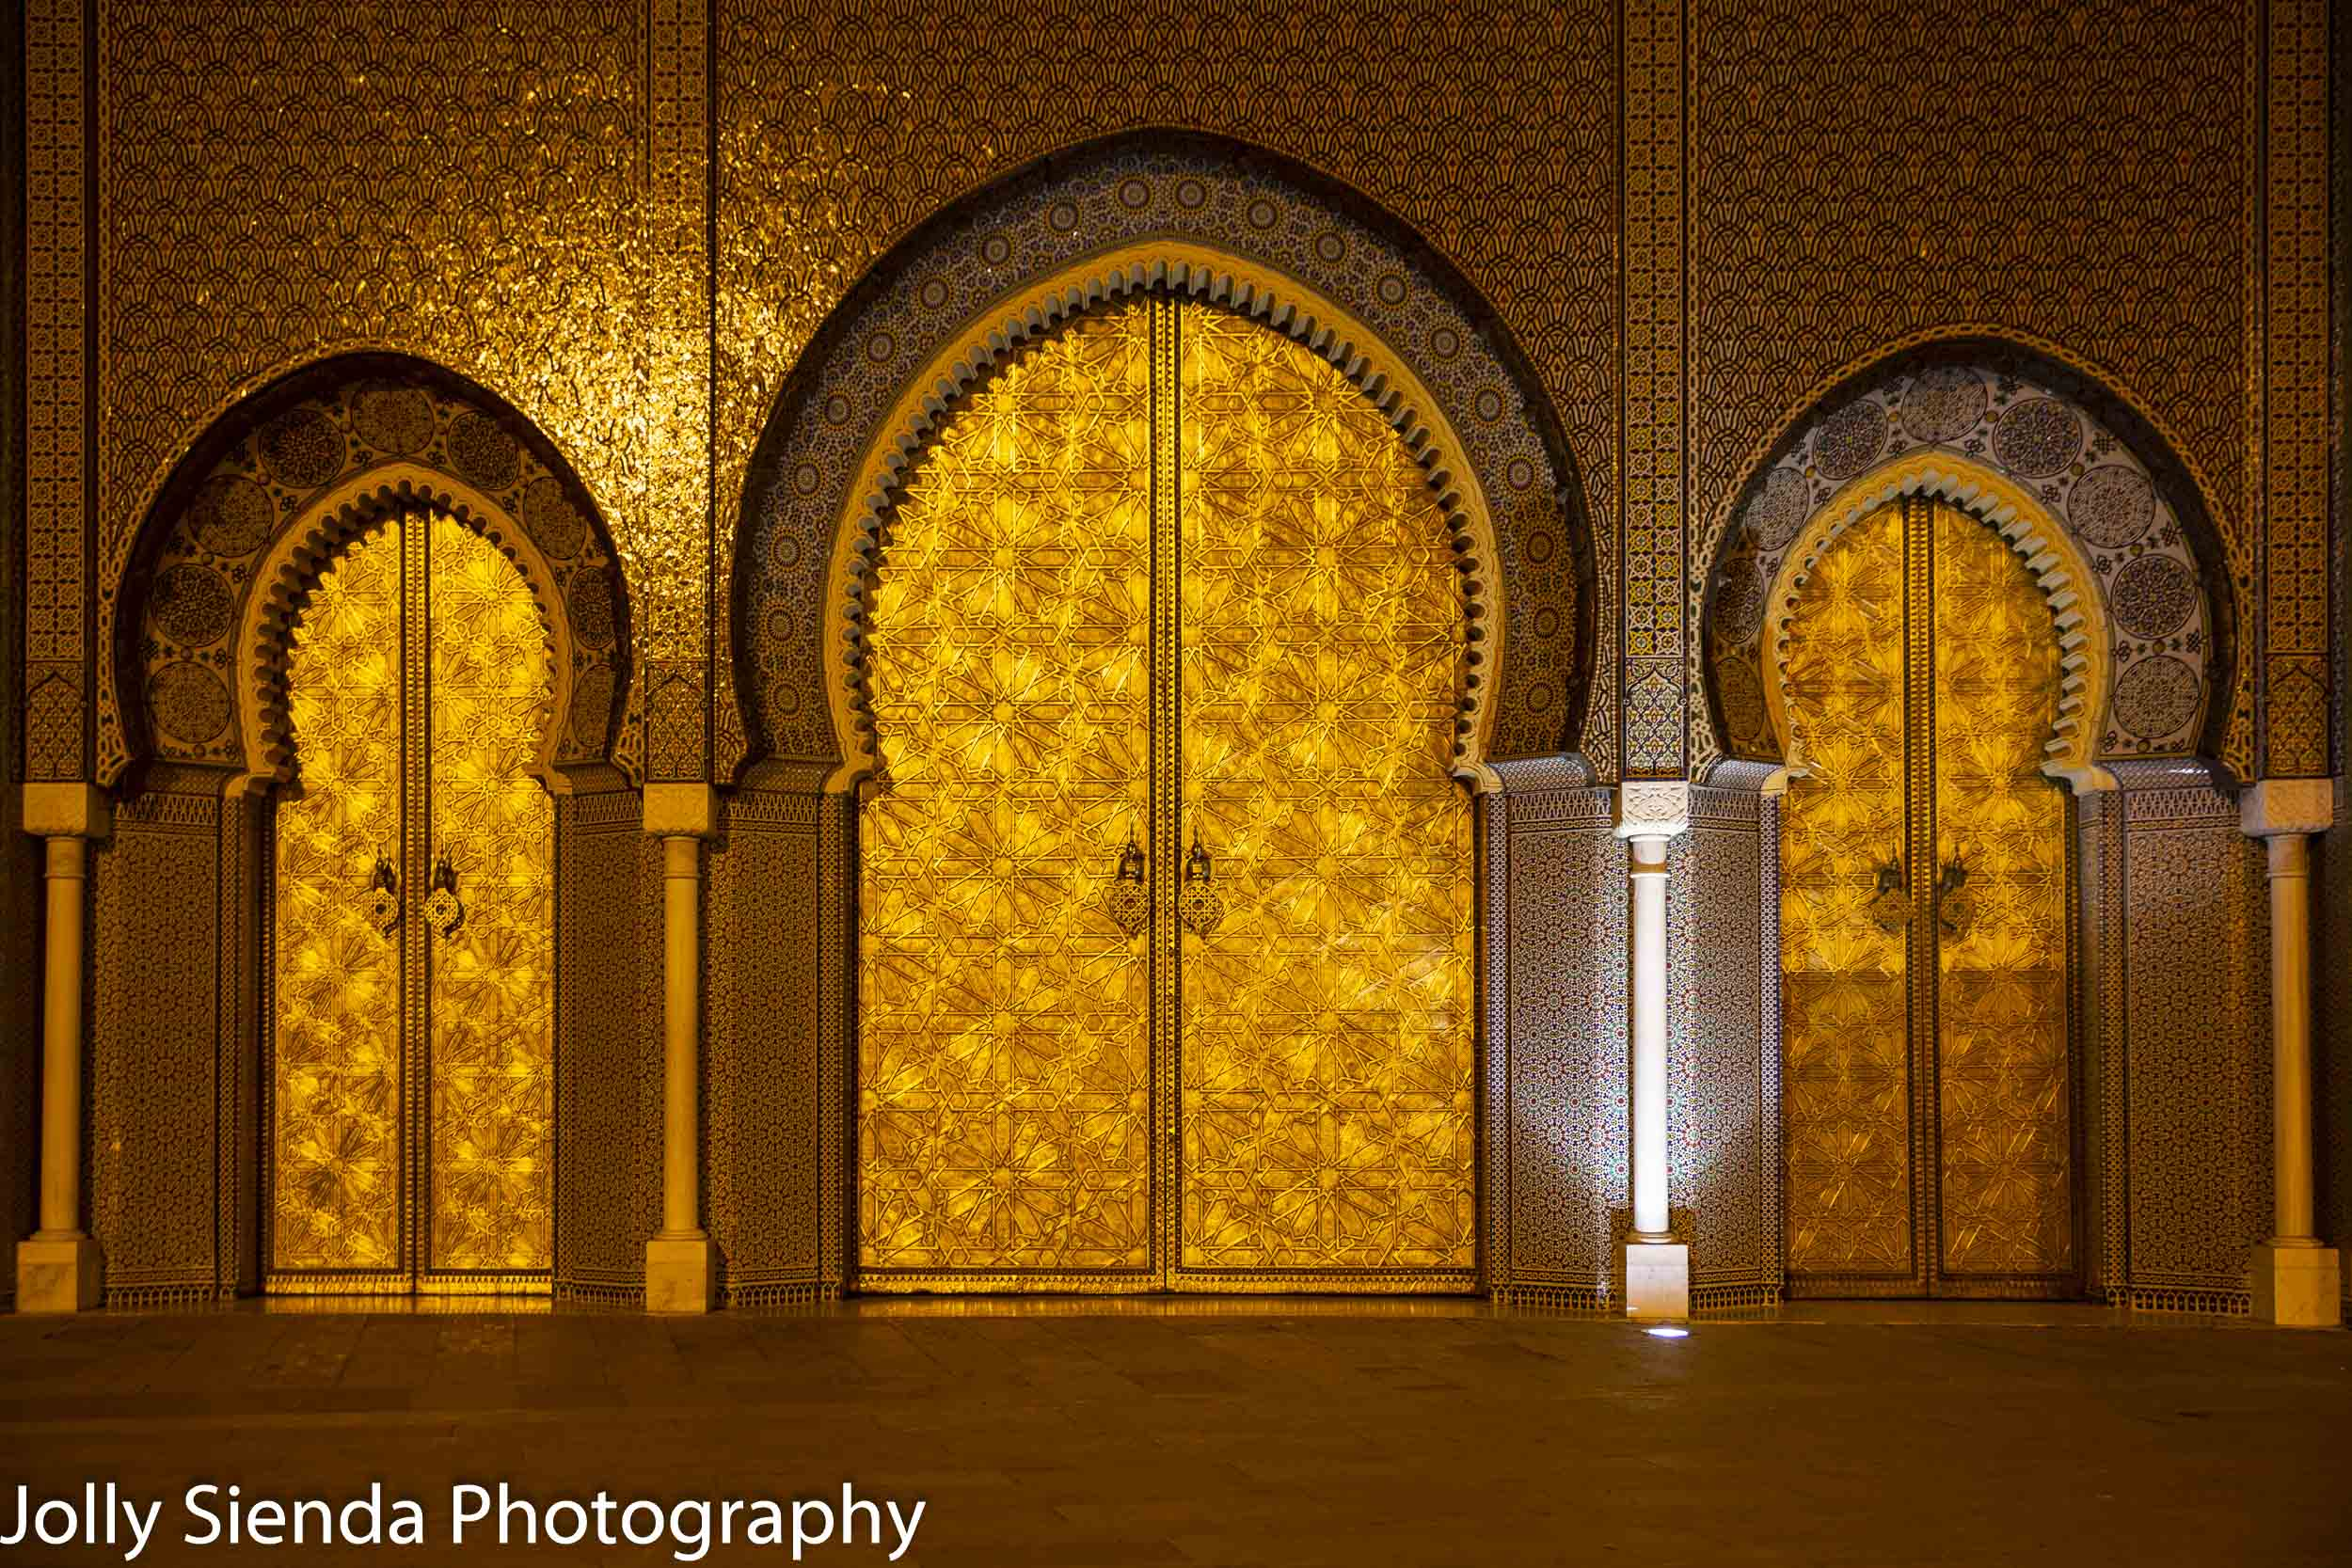 Golden doors to the Royal Palace of Fez